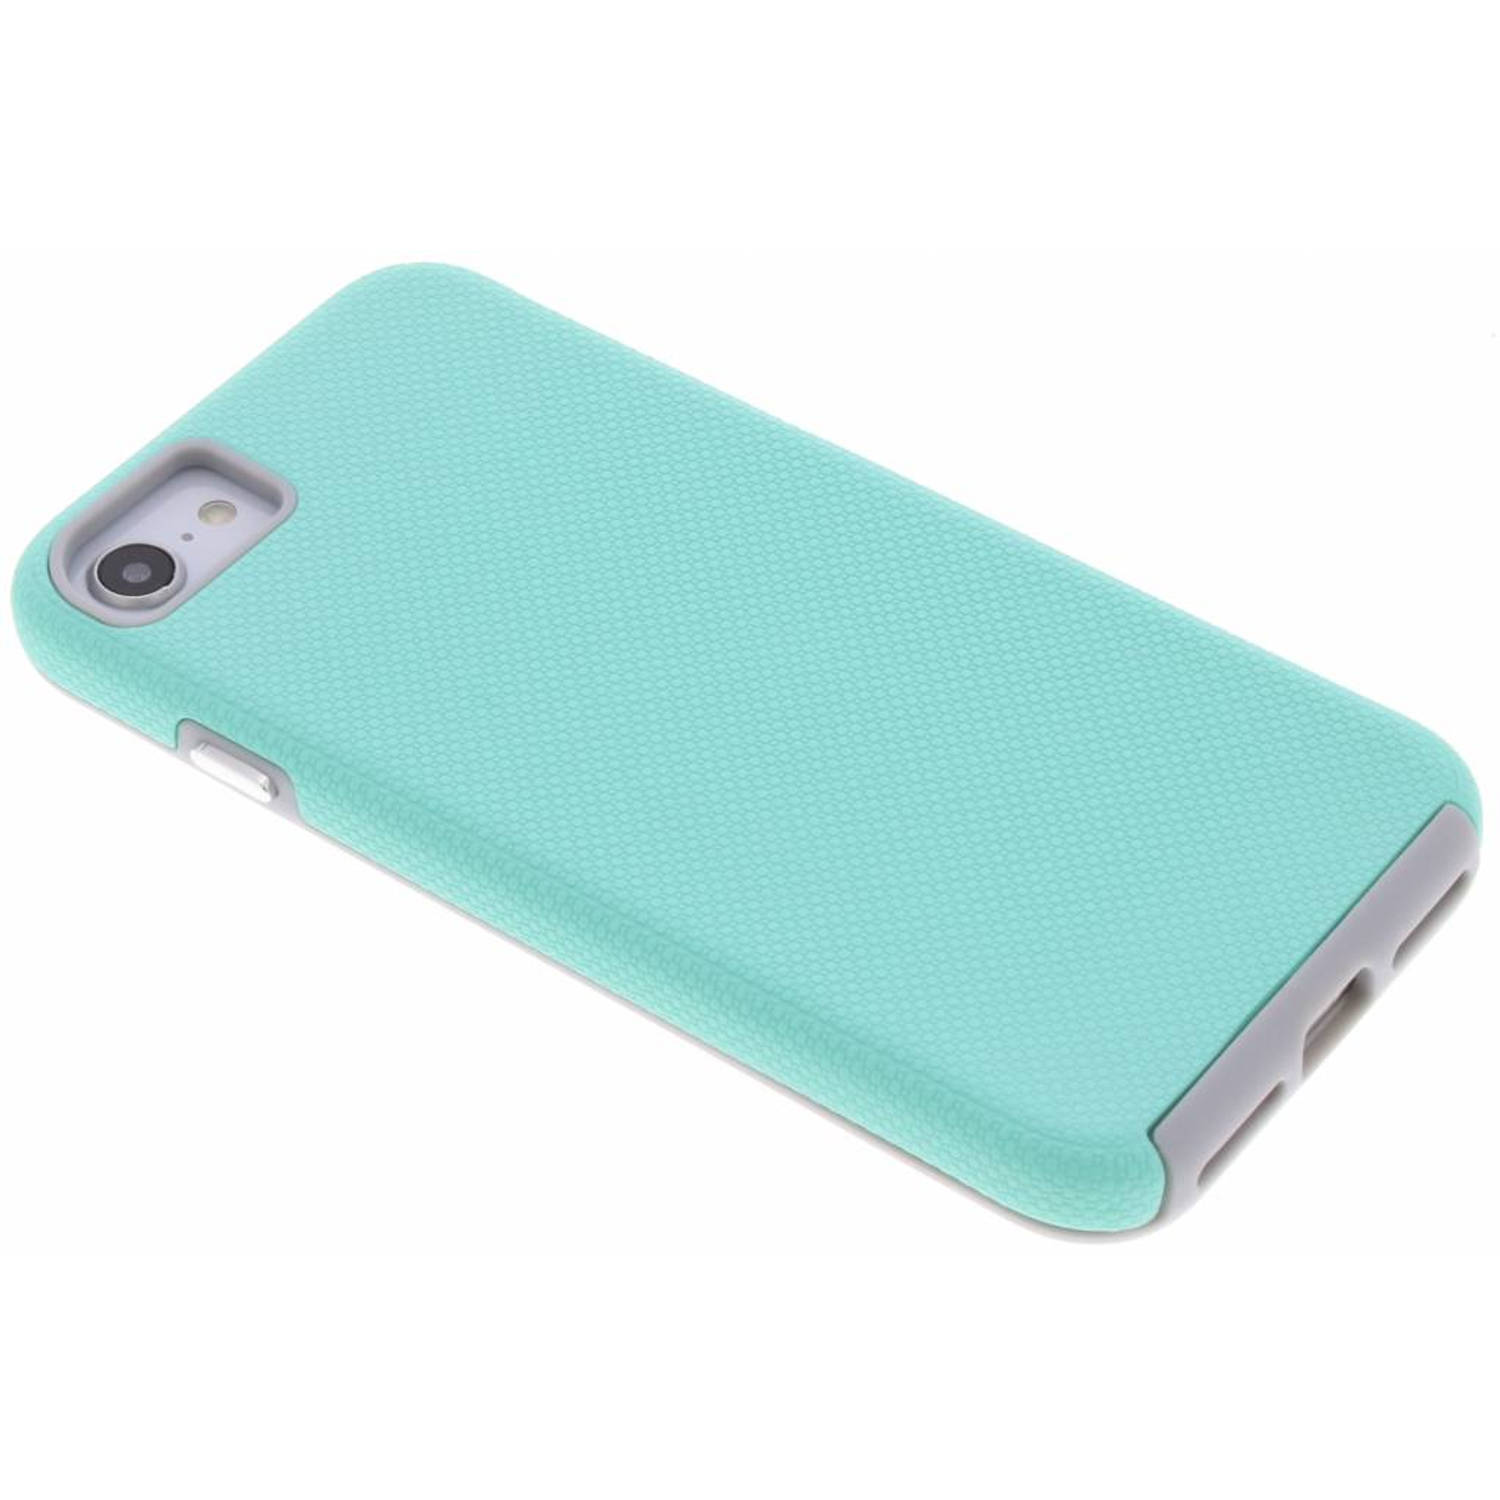 Turquoise Xtreme Cover voor de iPhone 8 / 7